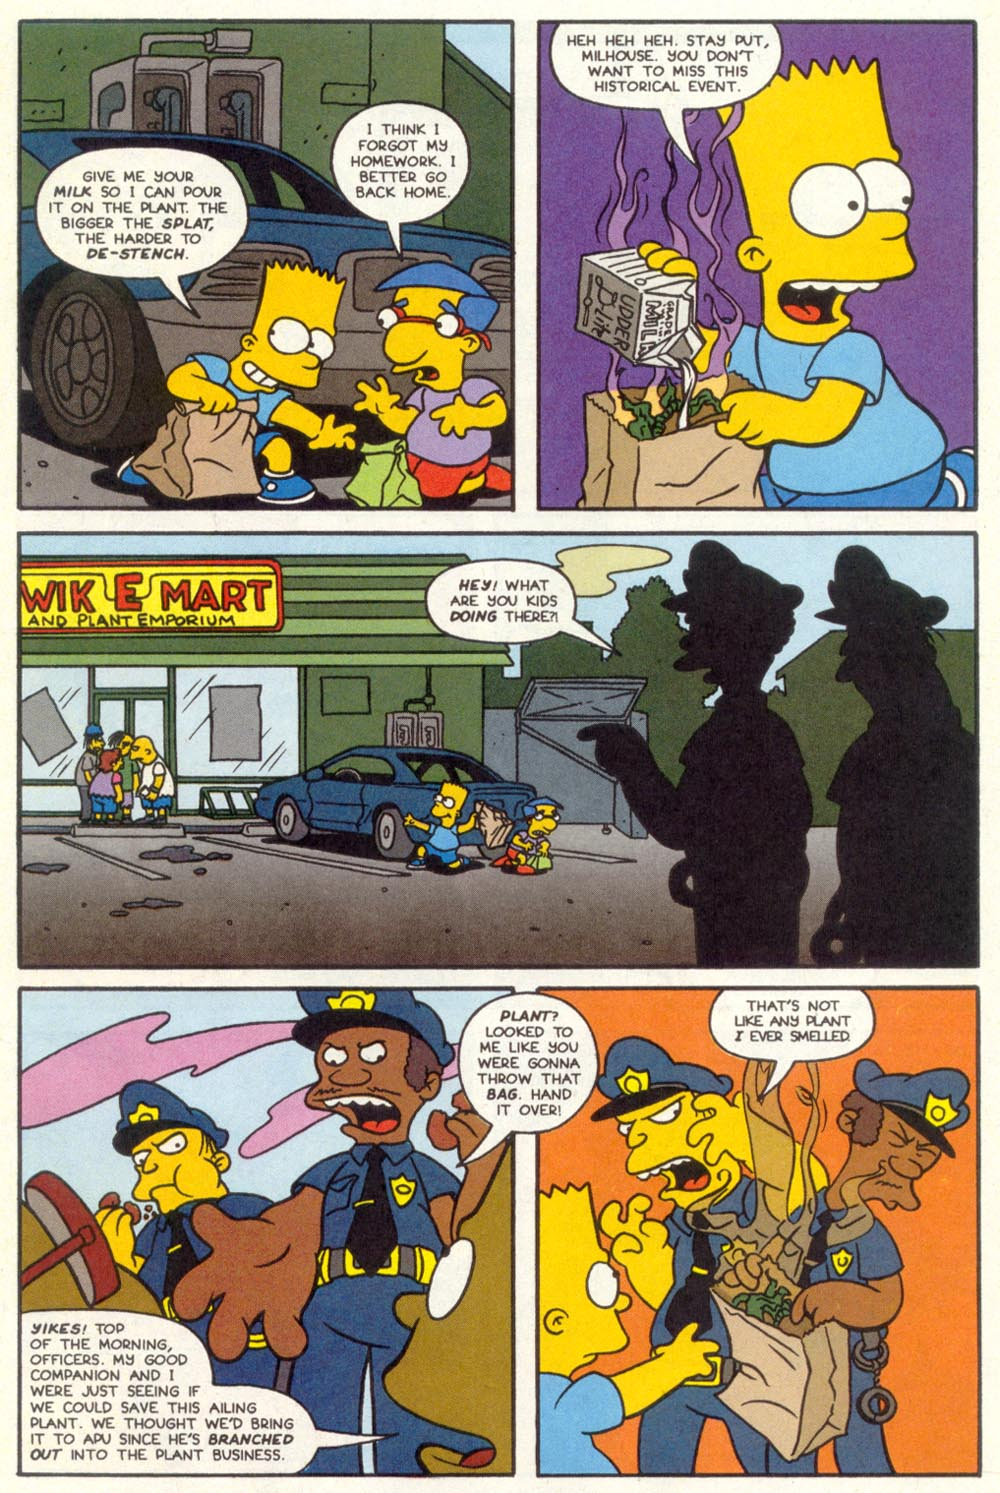 Read online Treehouse of Horror comic -  Issue #1 - 9